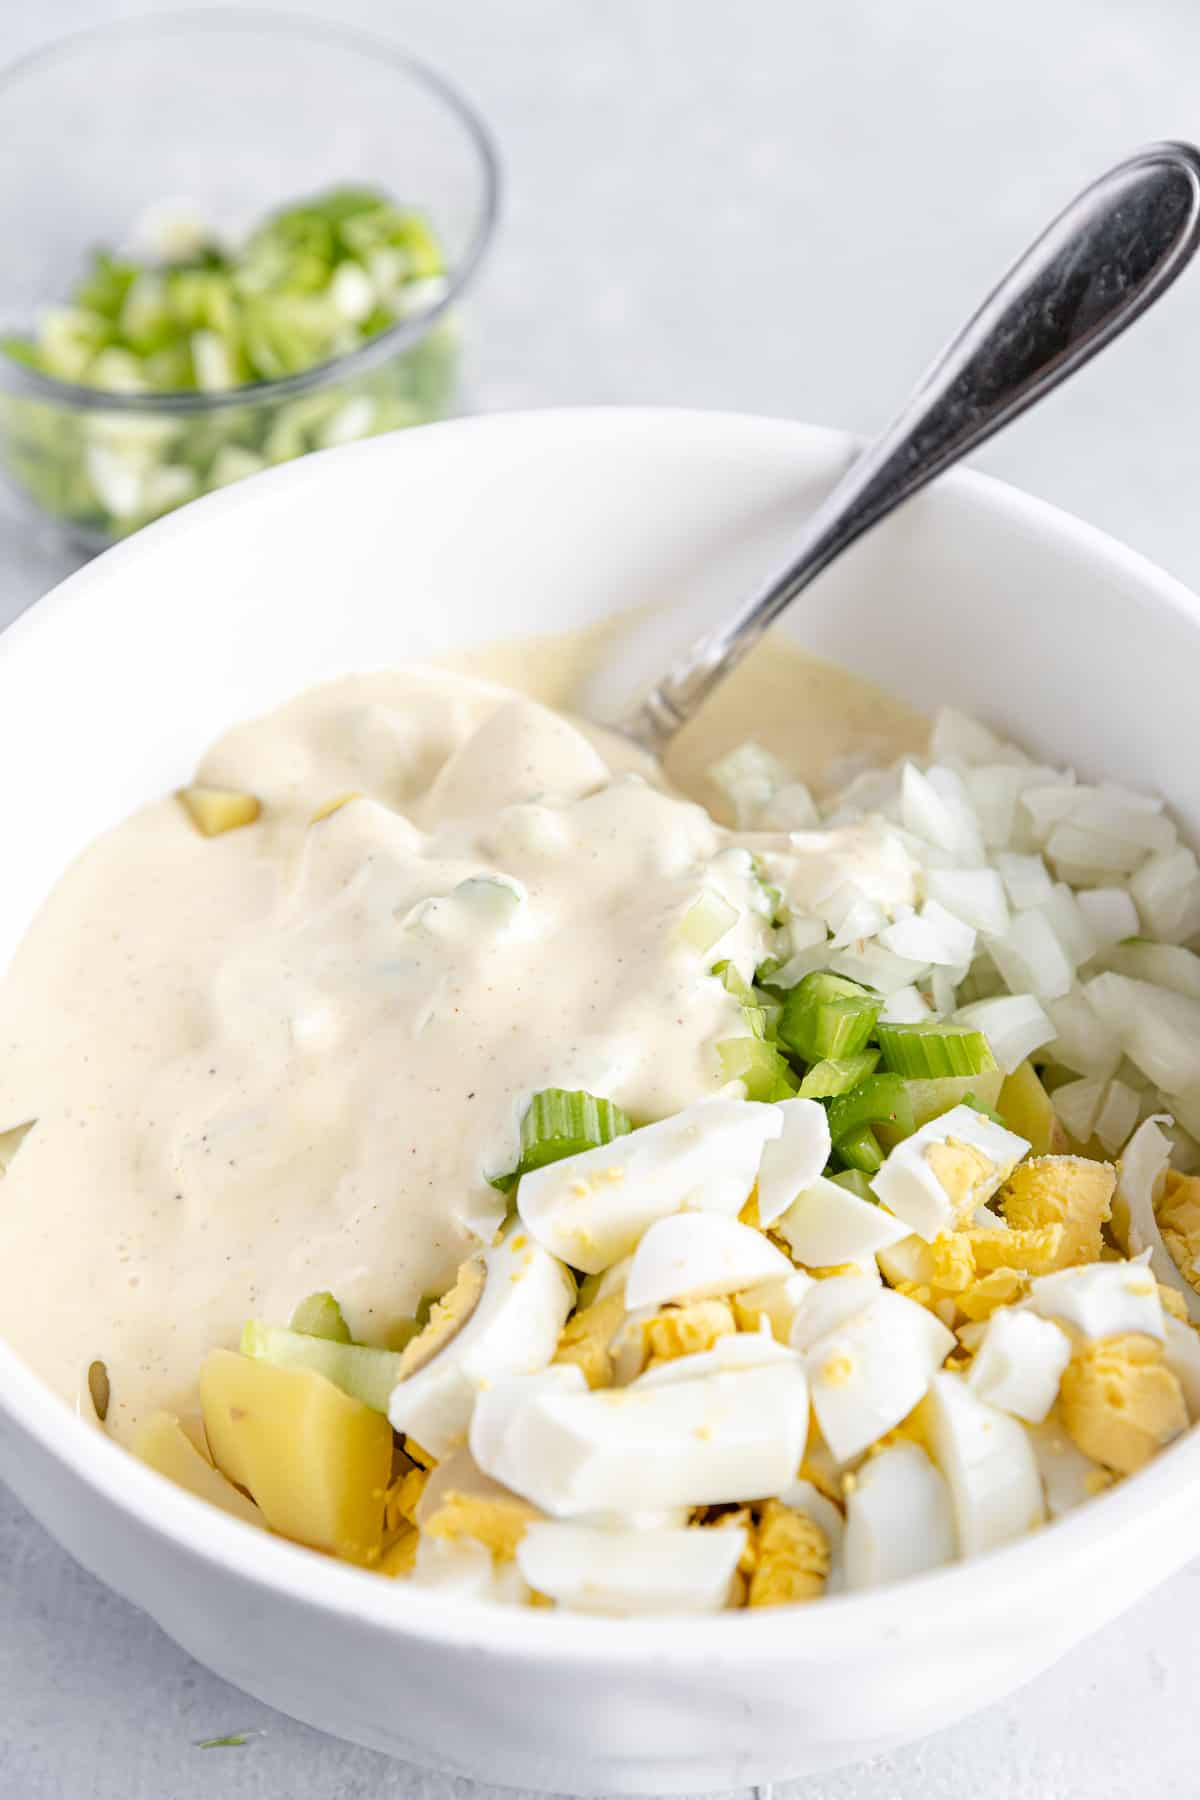 Mayonnaise Dressing Added Into the Bowl of Unmixed Potato Salad Ingredients